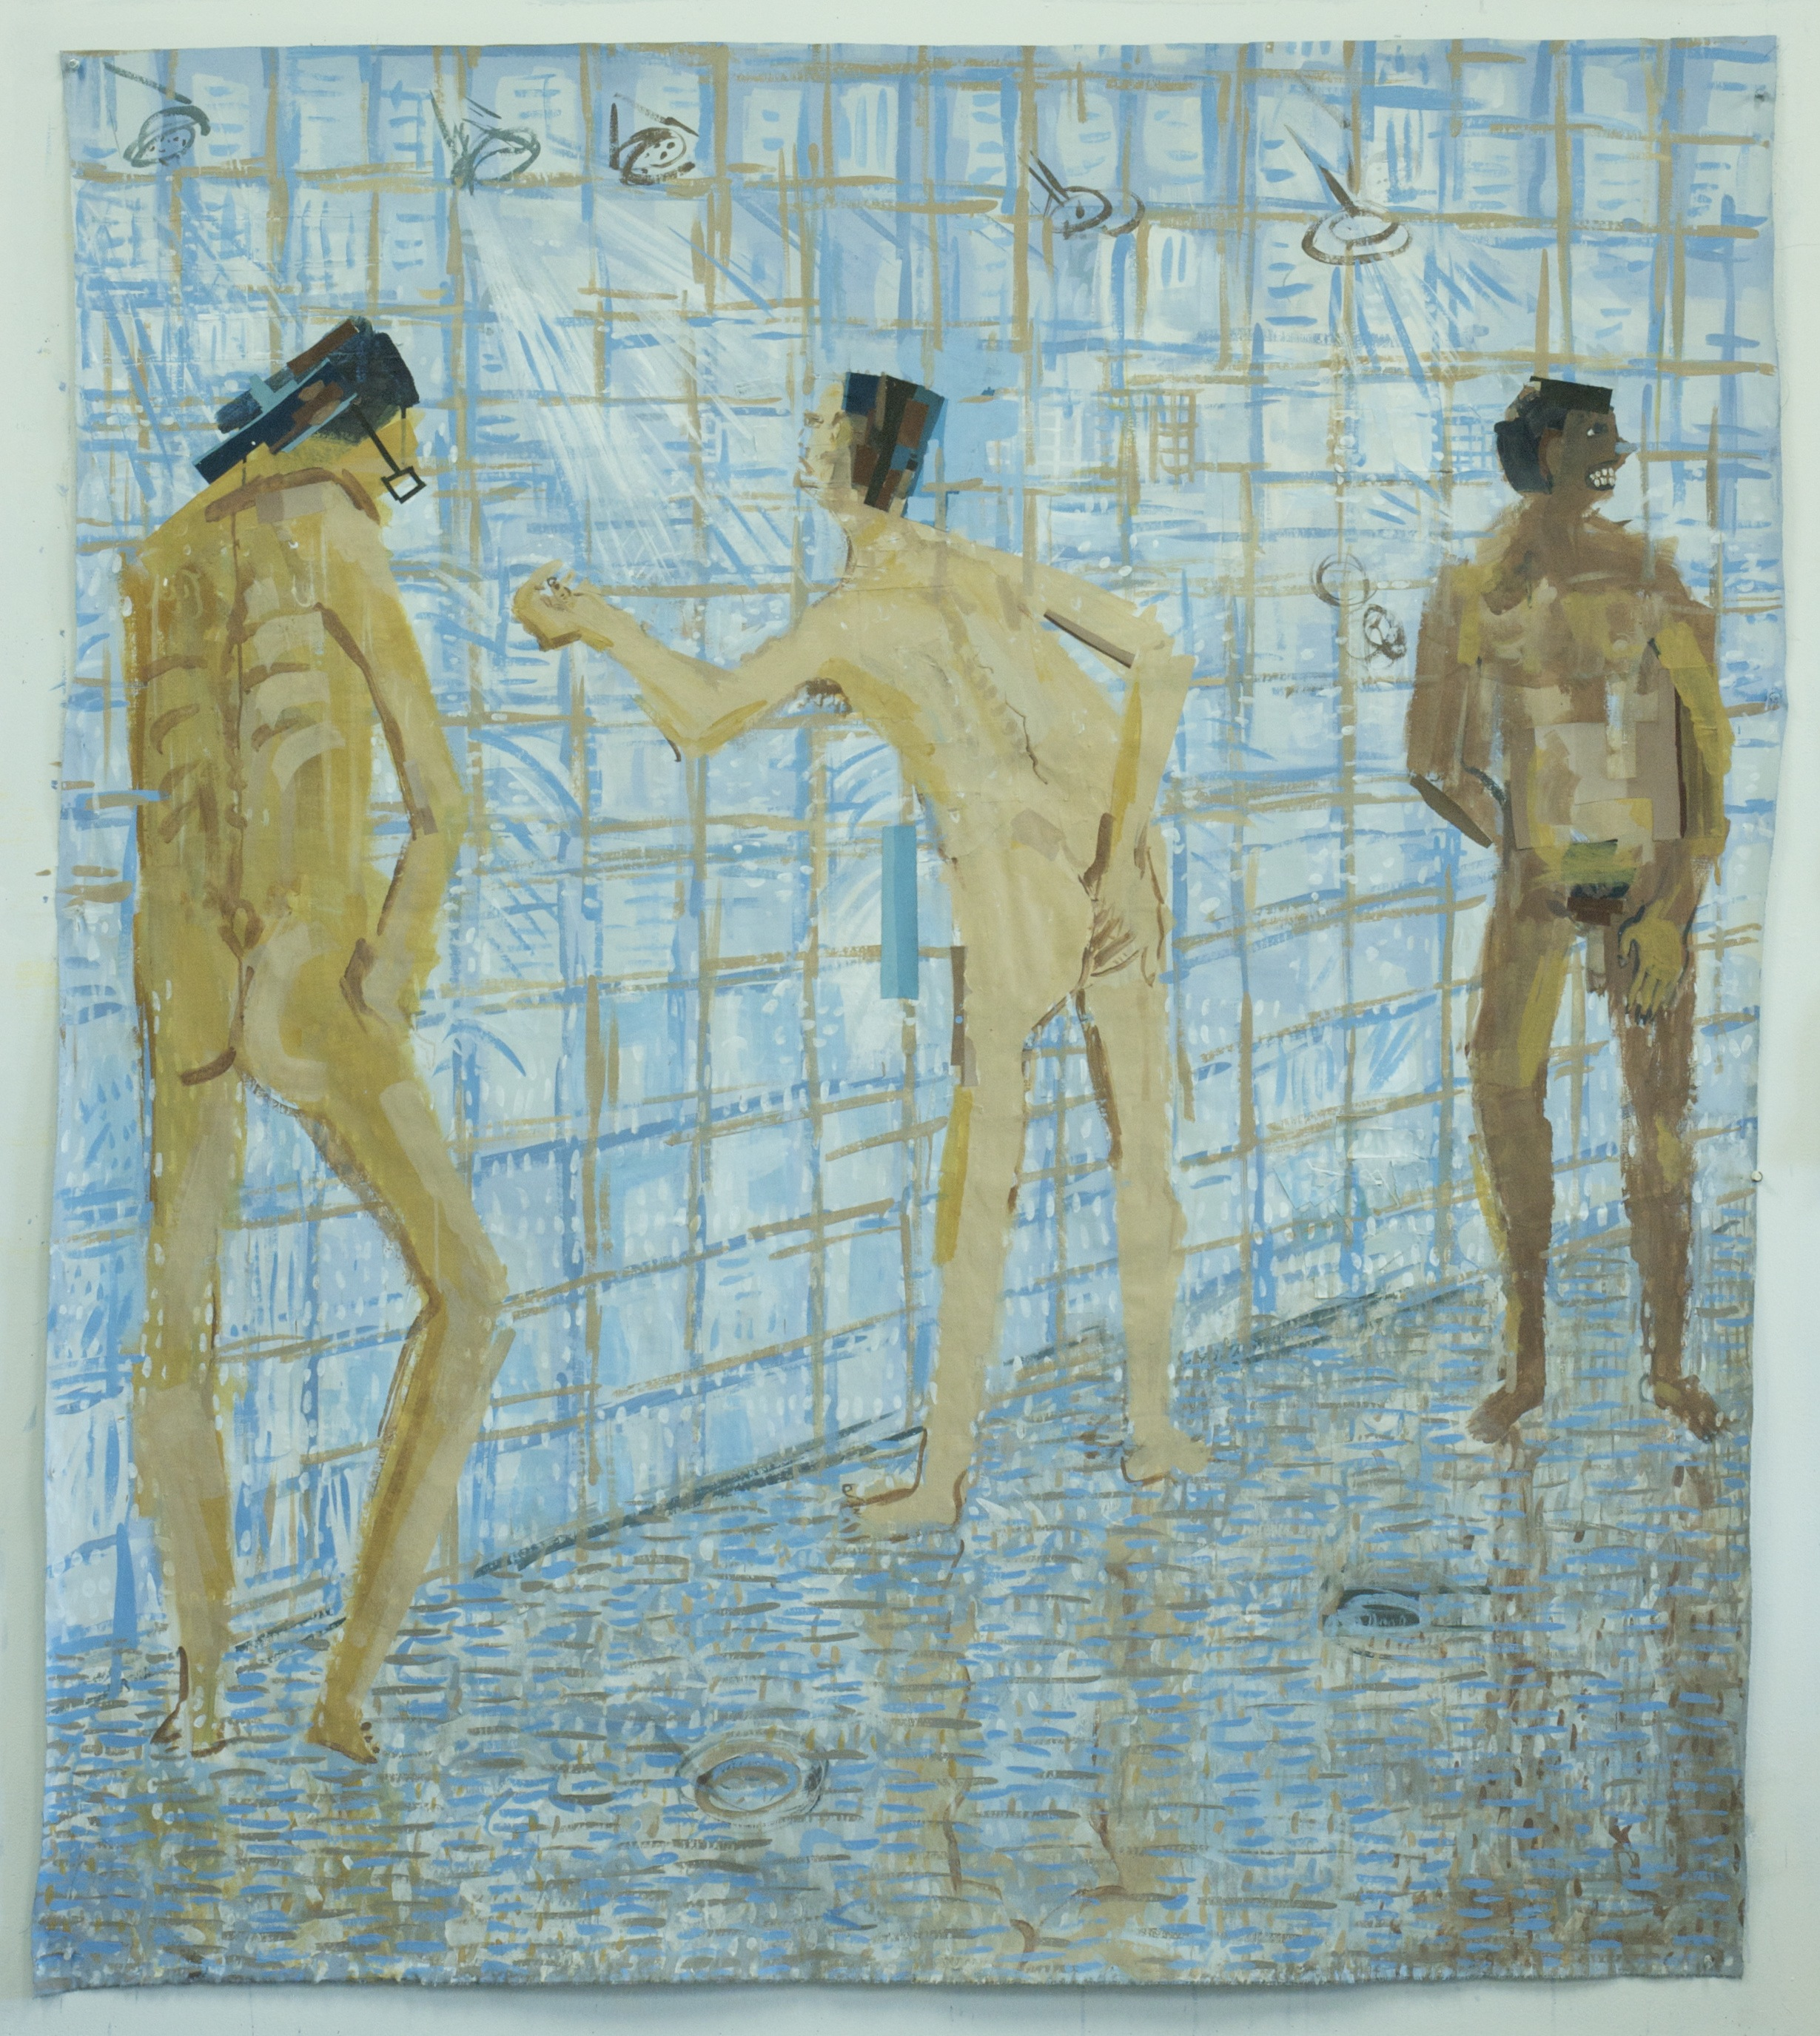 Men's Shower , 2016, Acrylic and gouache on linen, 72x63 inches